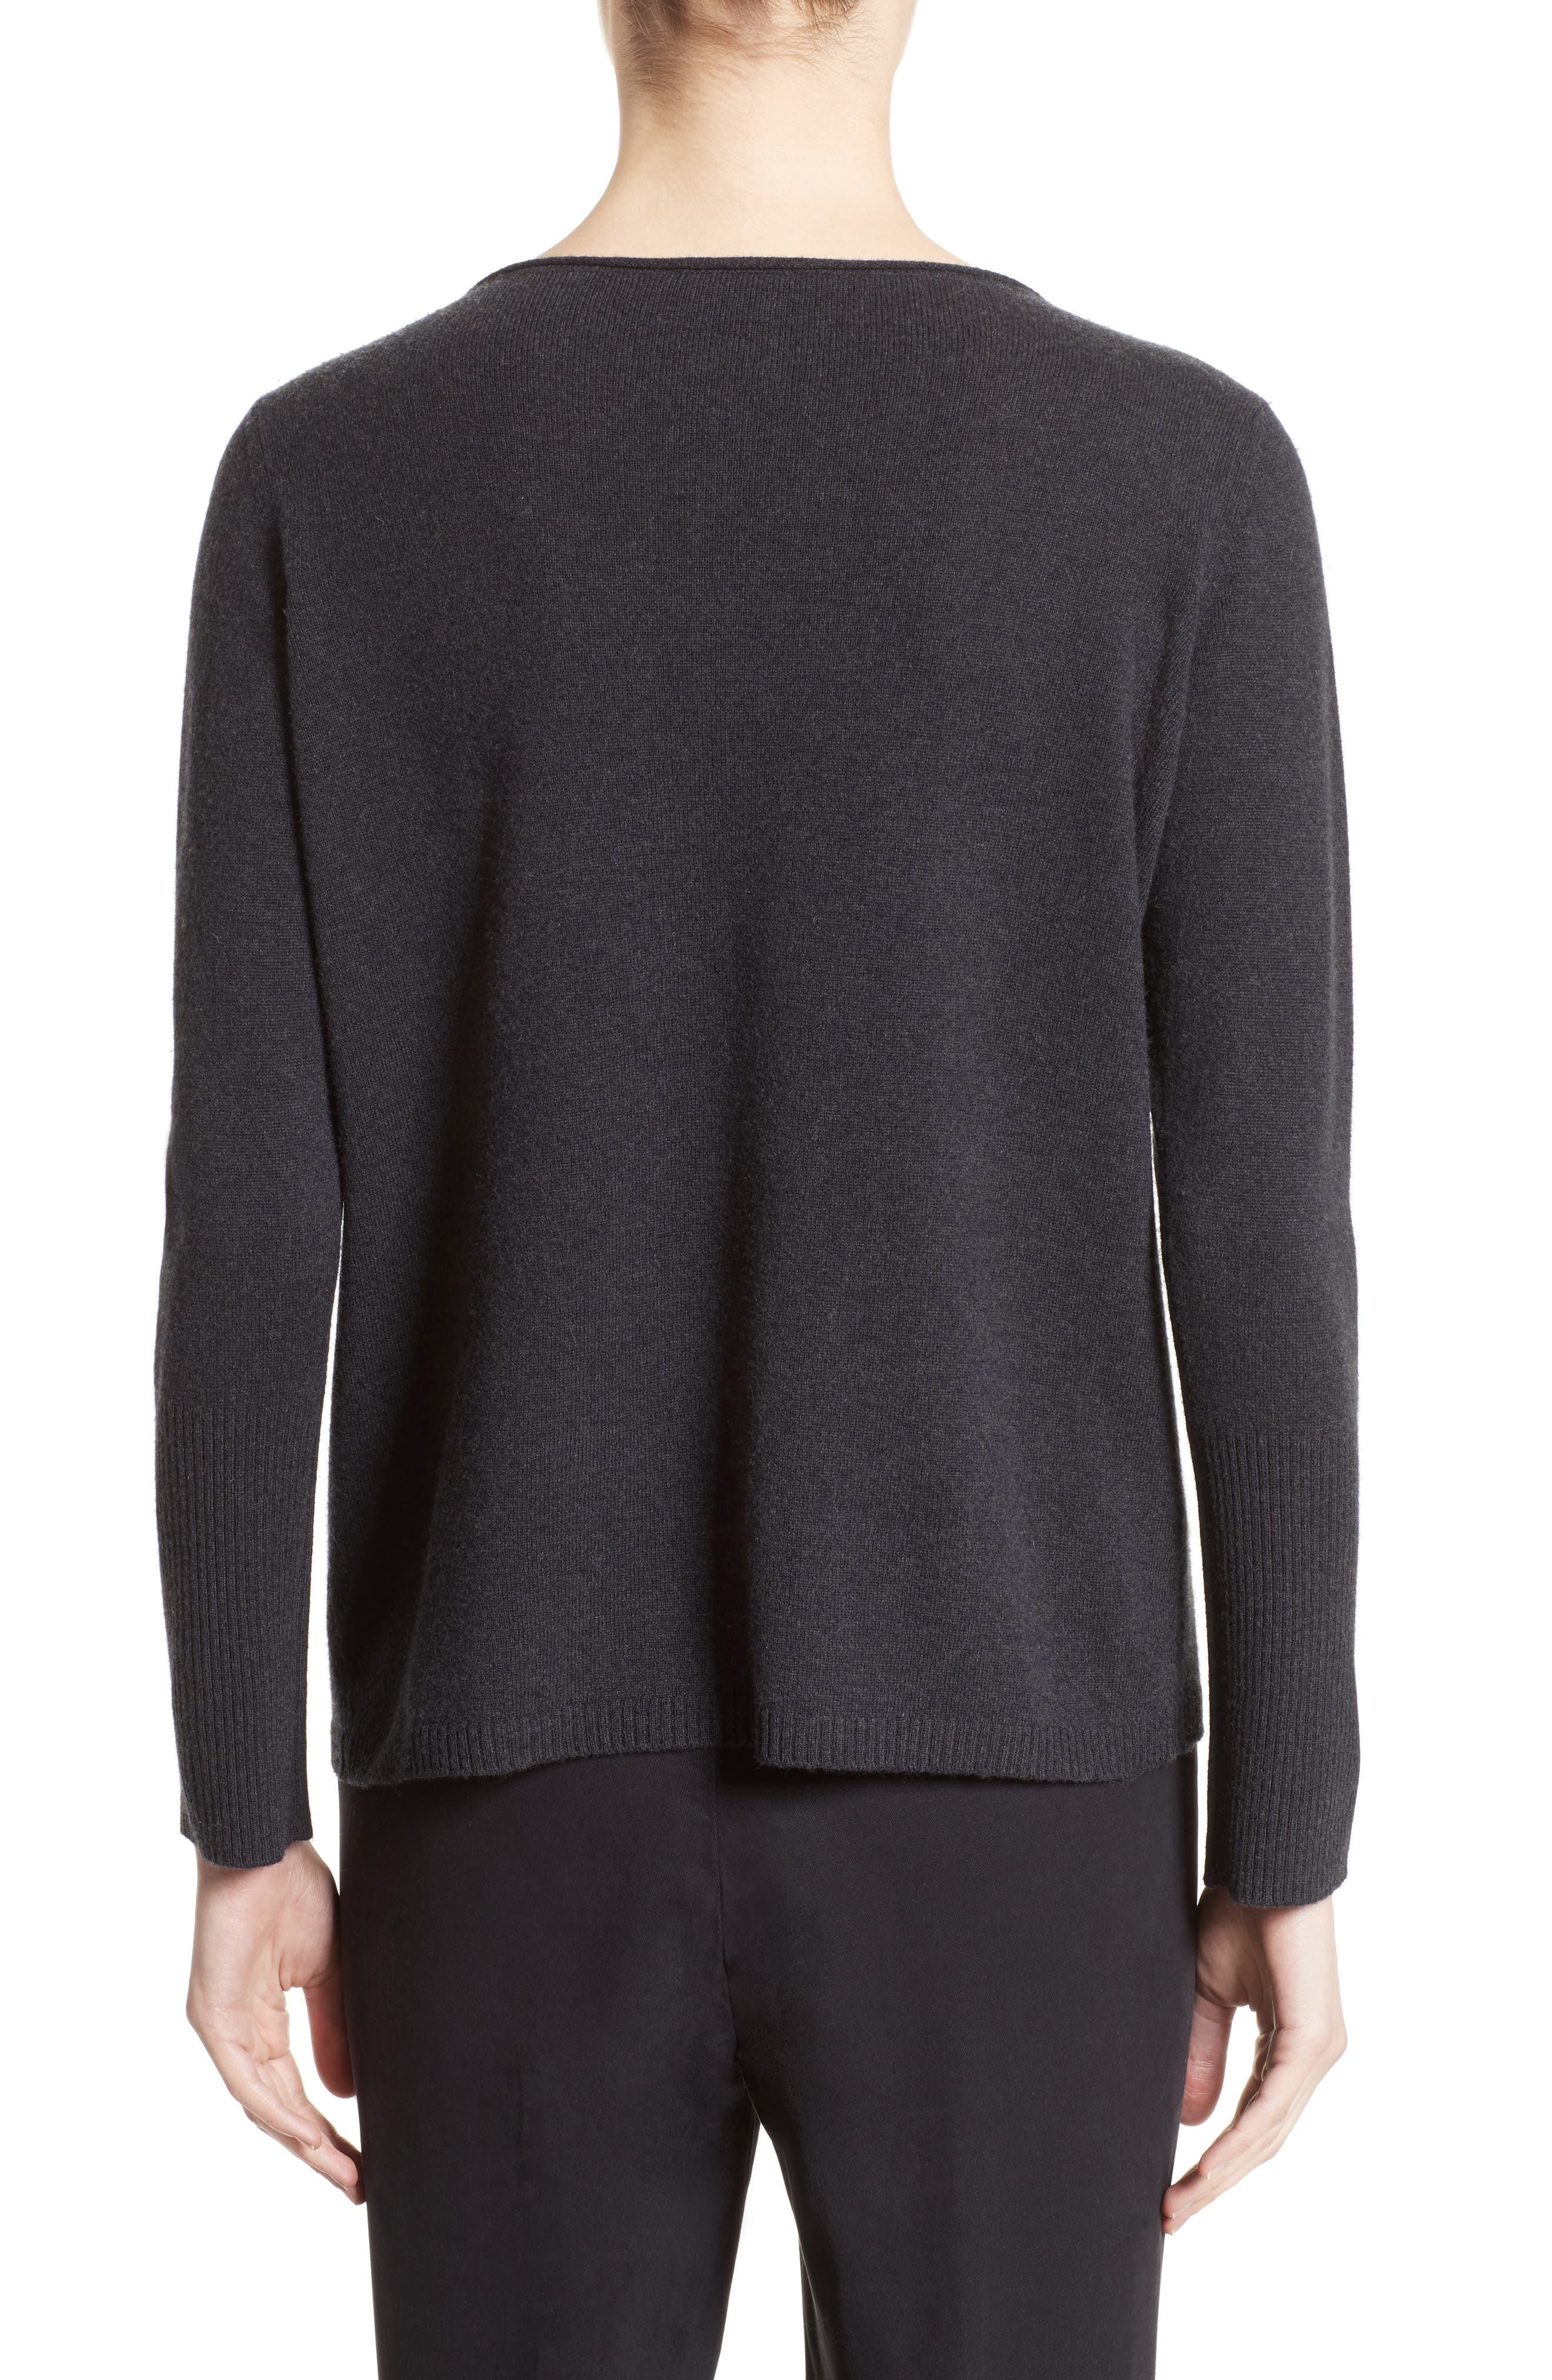 Wool, Silk & Cashmere Boatneck Sweater,                             Alternate thumbnail 2, color,                             Charcoal Navy